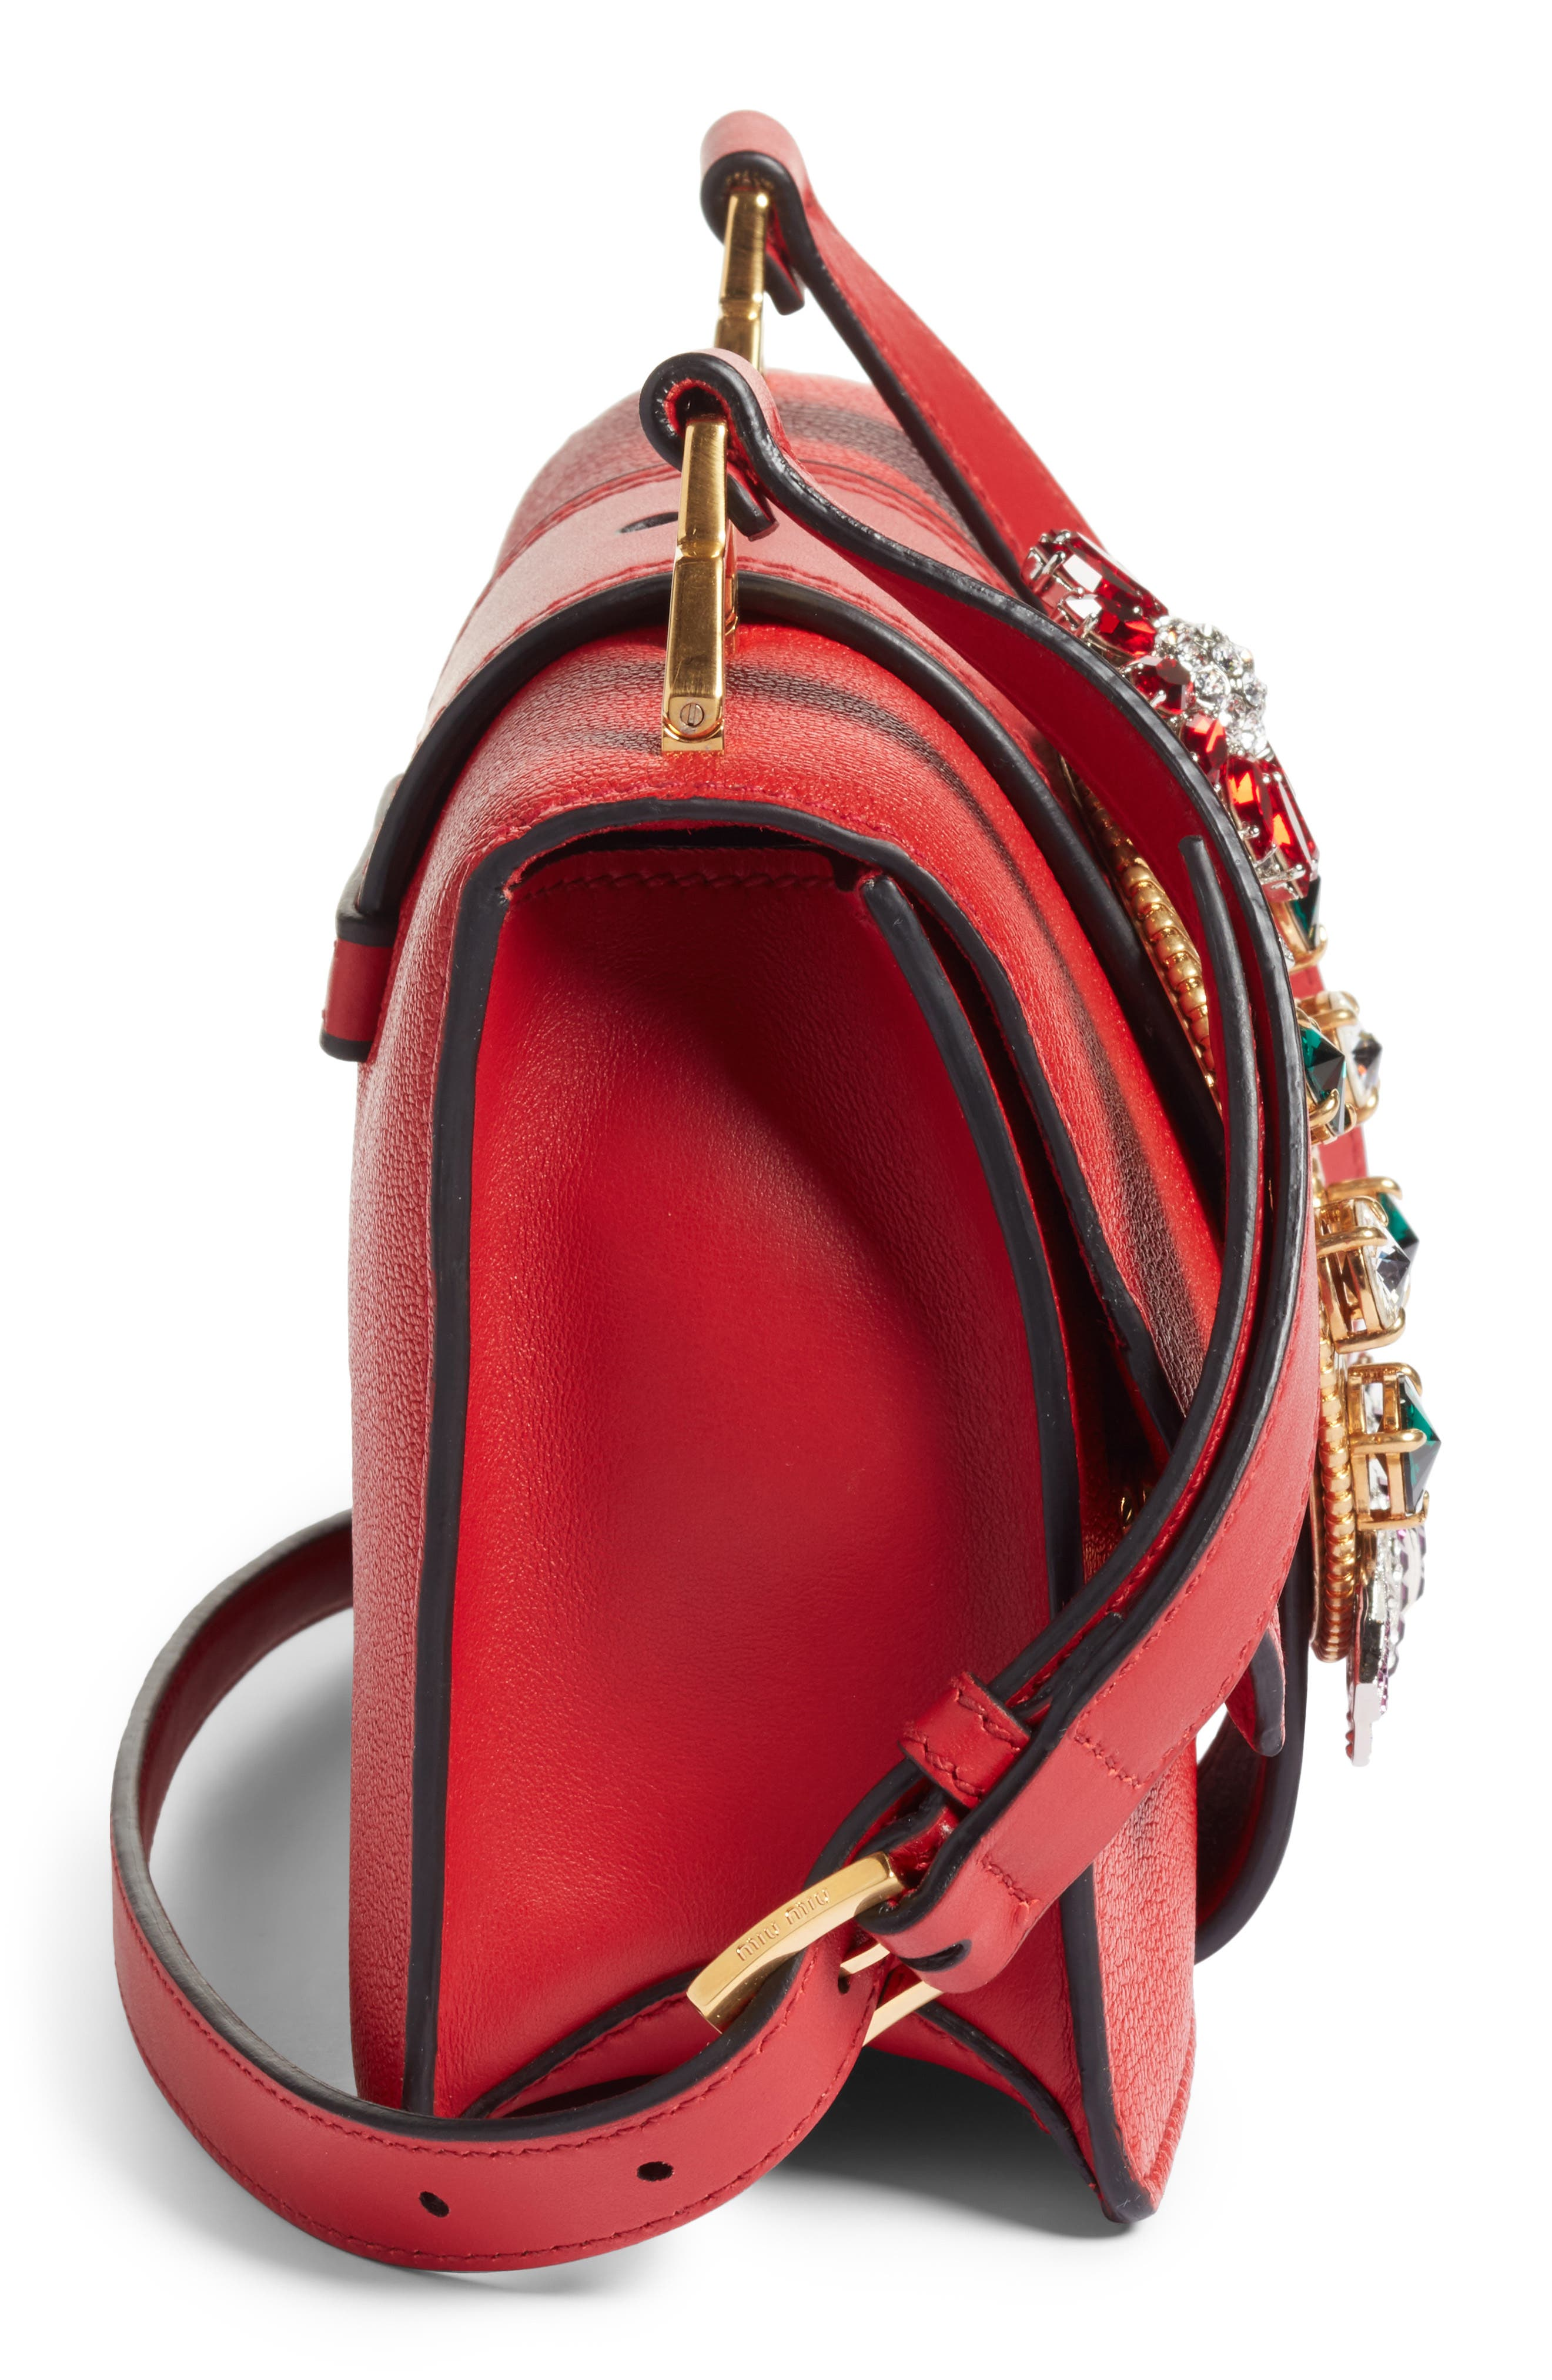 Madras Crystal Embellished Leather Shoulder Bag,                             Alternate thumbnail 5, color,                             FUOCO